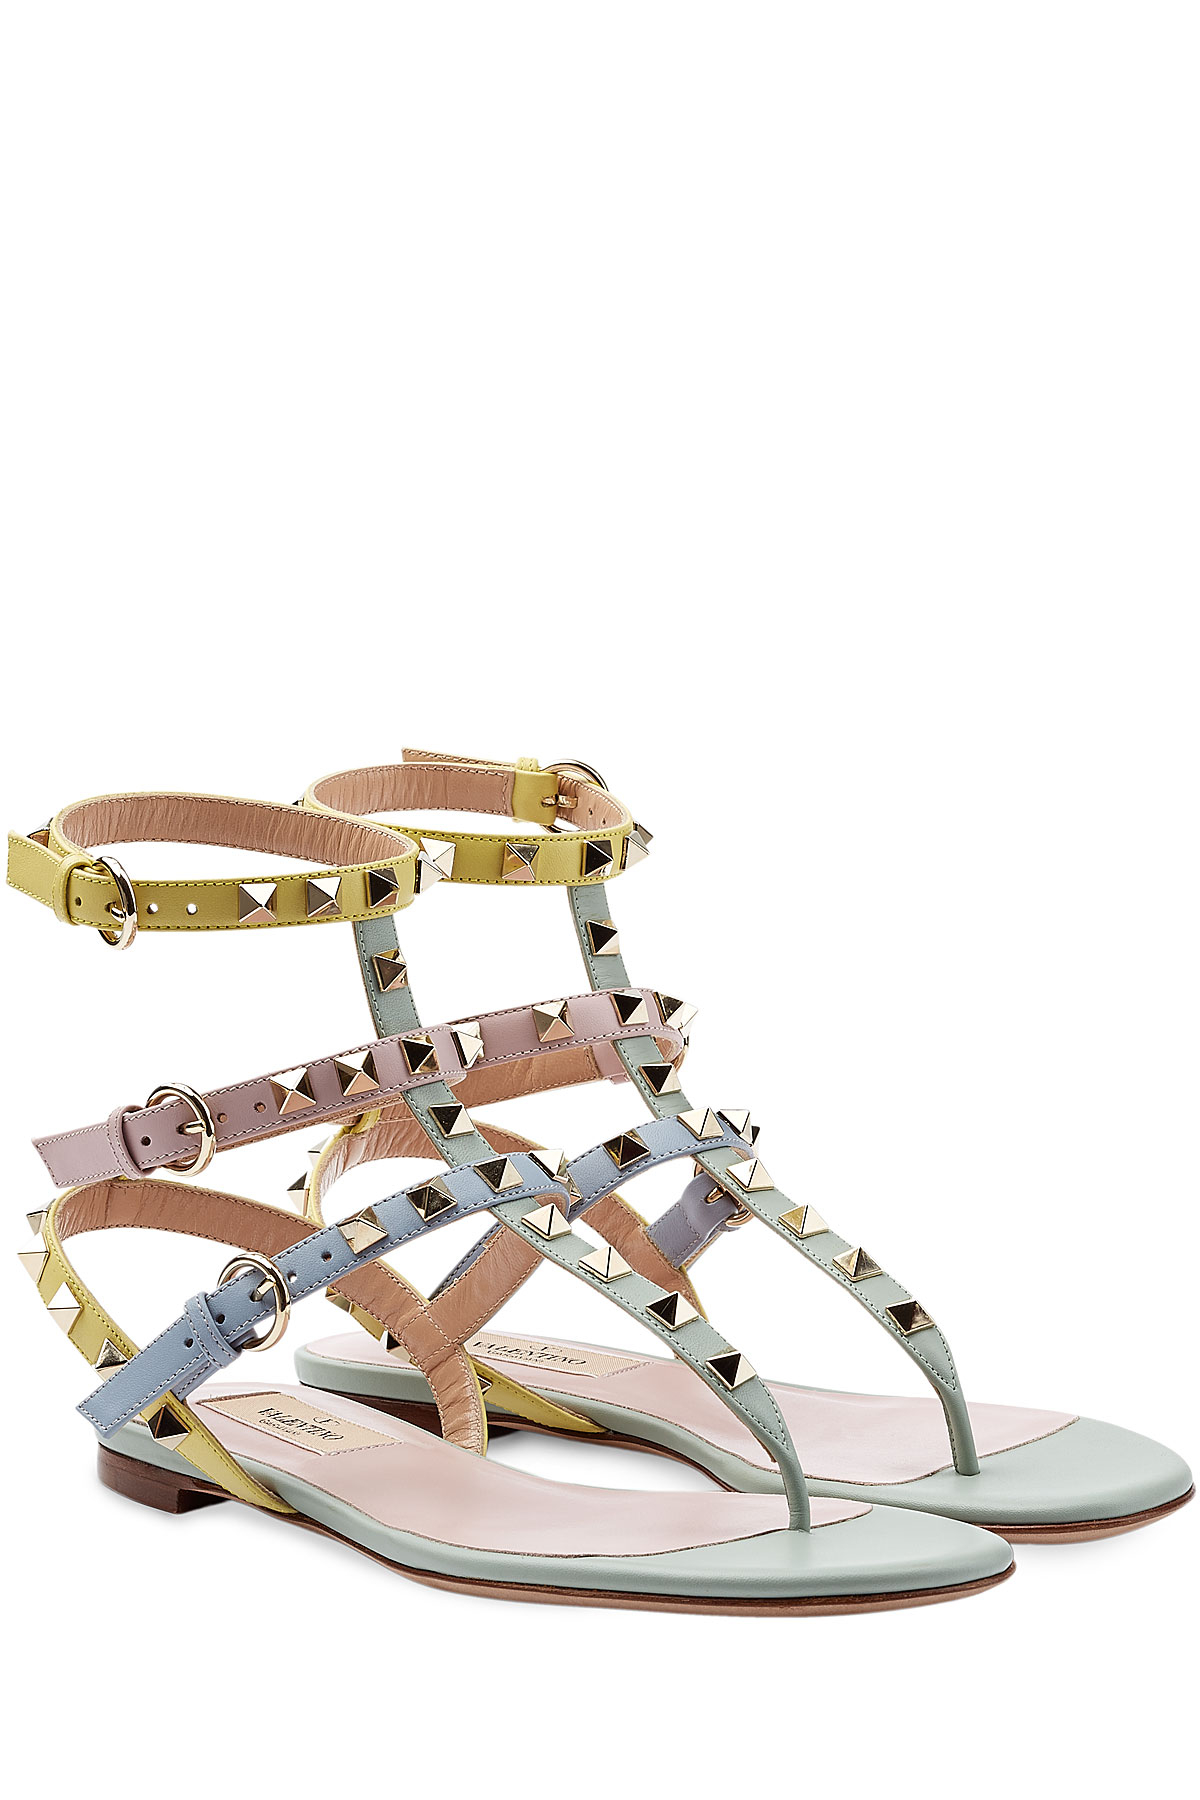 Lyst Valentino Rockstud Leather Sandals In Pink